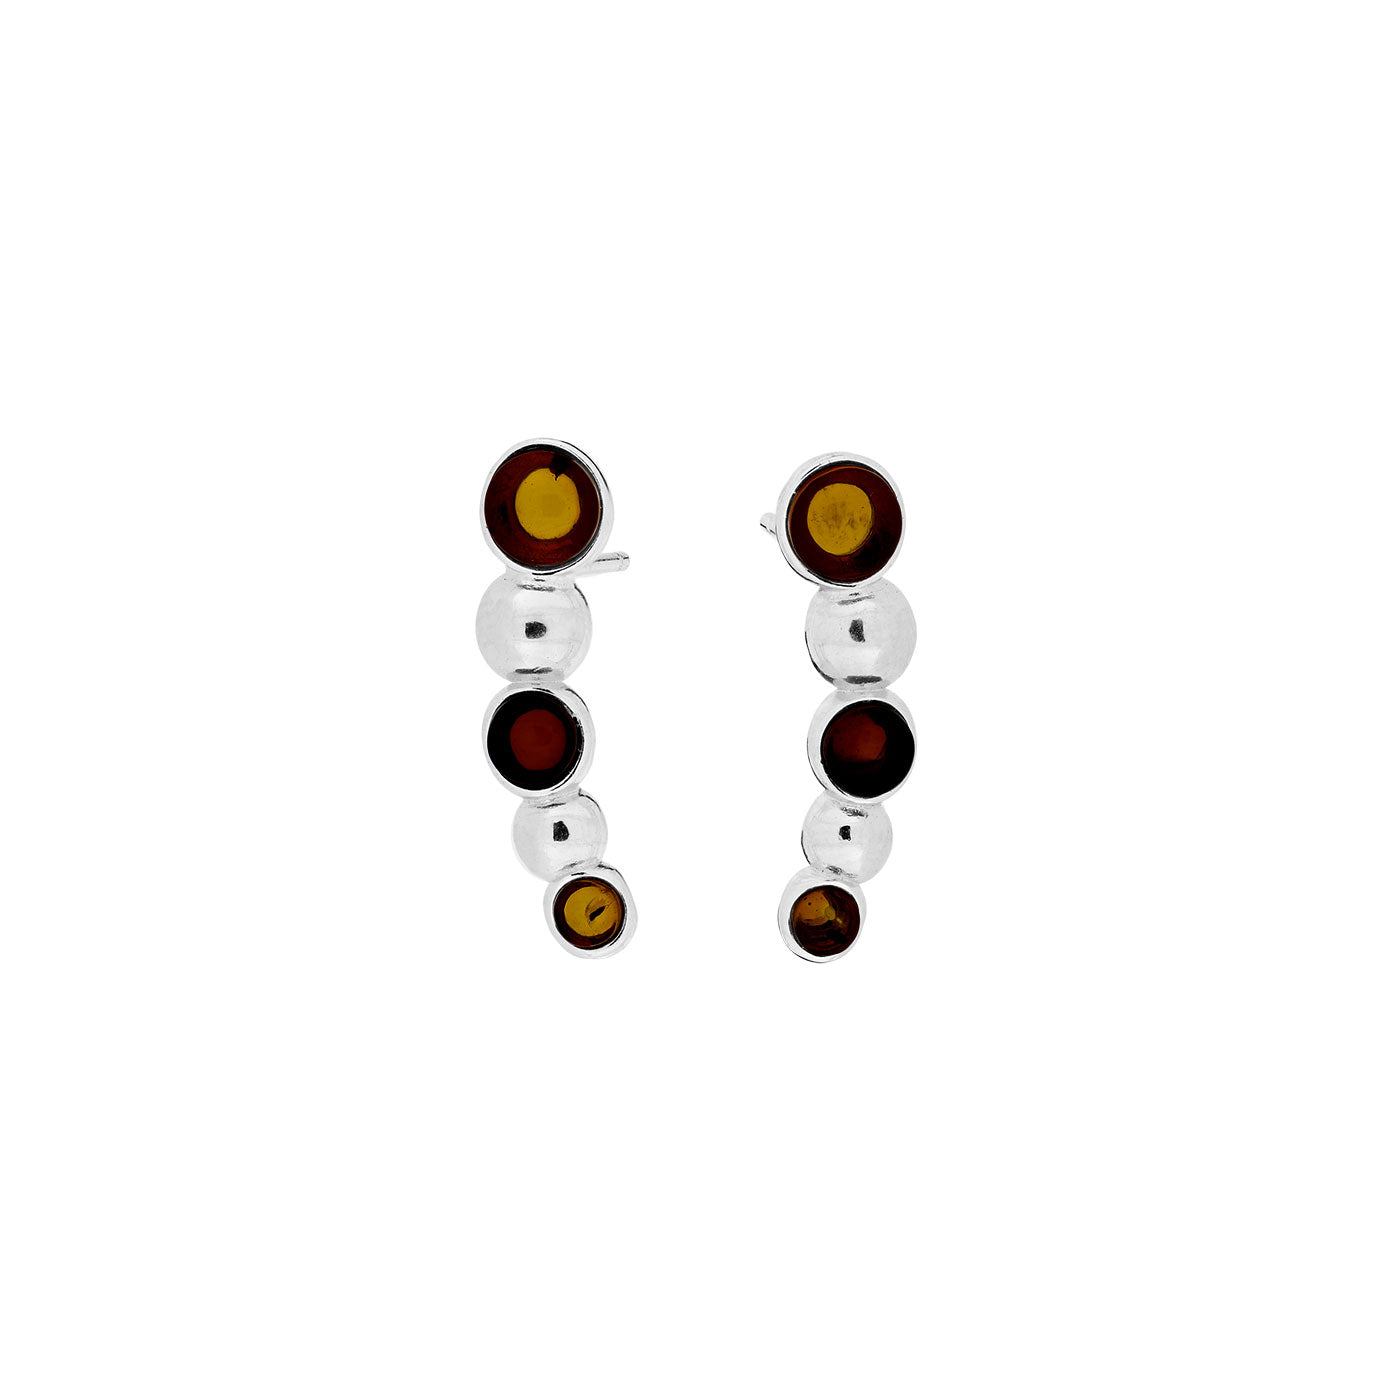 Two-Colour Amber Curving Beaded Earrings